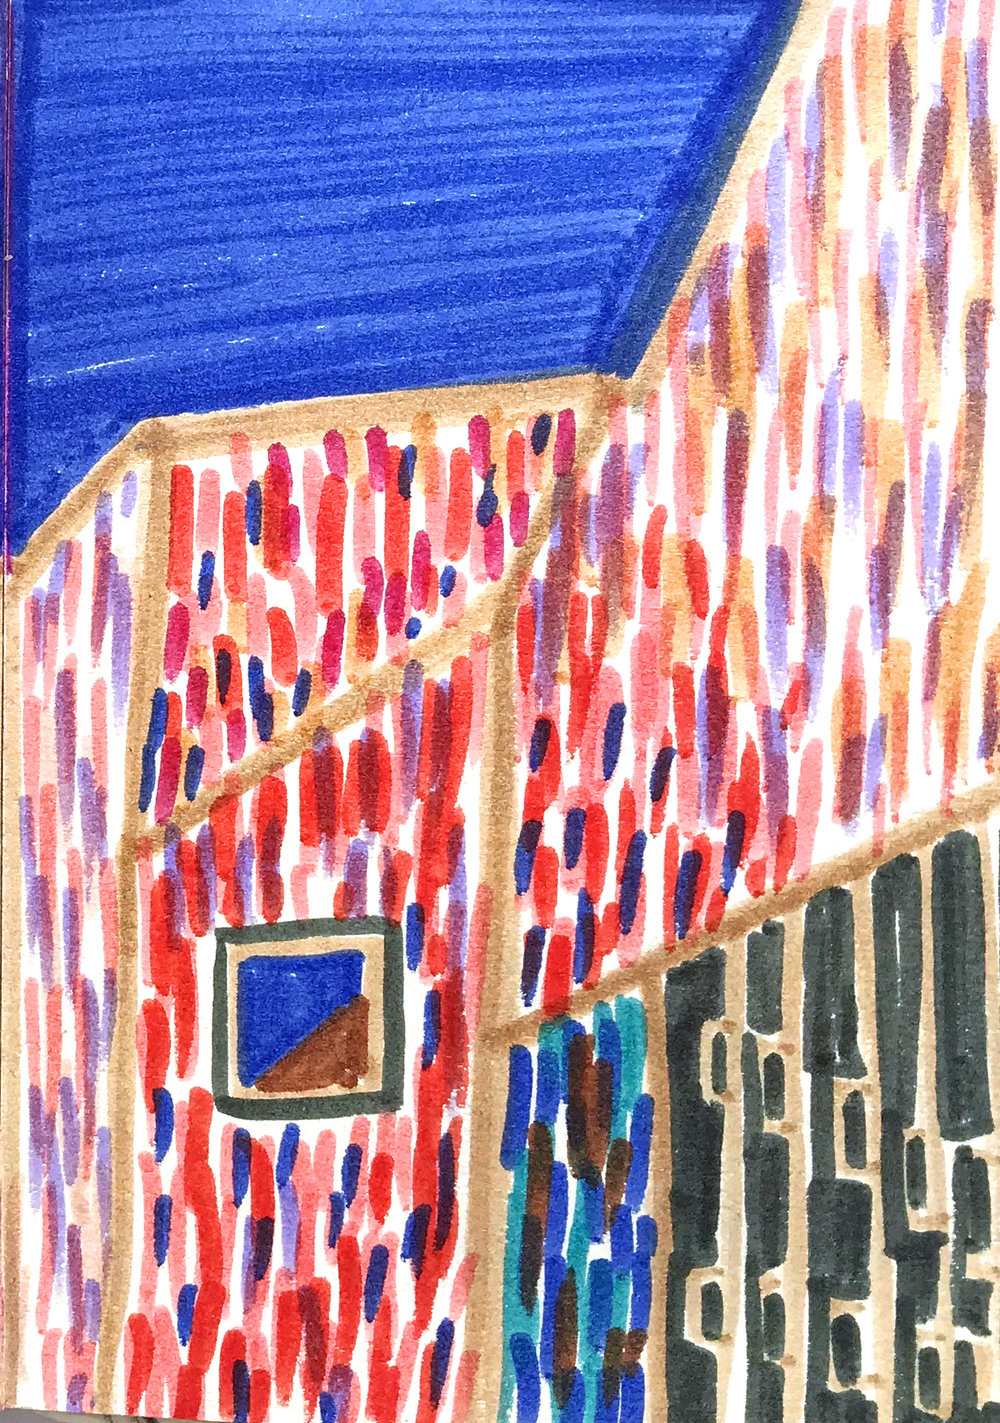 Brandhorst (Munich, cold winter's day post Alex Katz), 2018, felt tip on paper, 10 x 15 cm